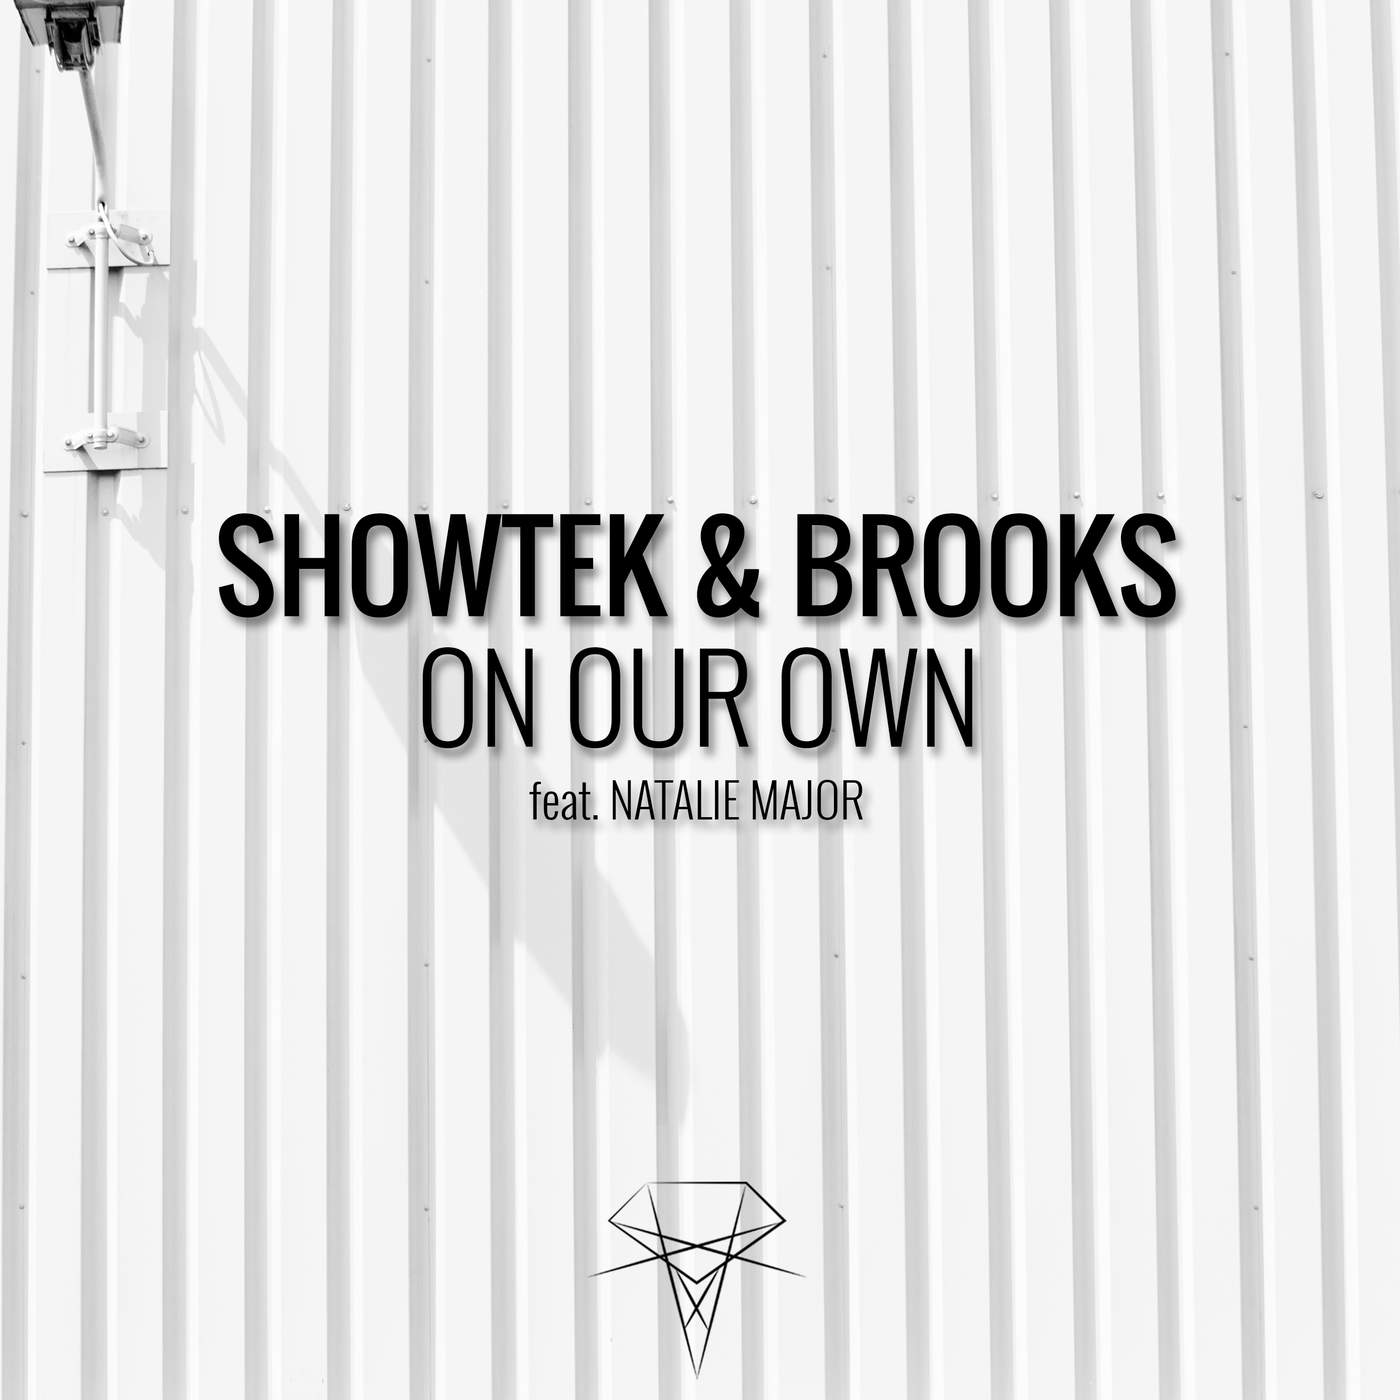 Showtek & Brooks - On Our Own (feat. Natalie Major) - Single Cover